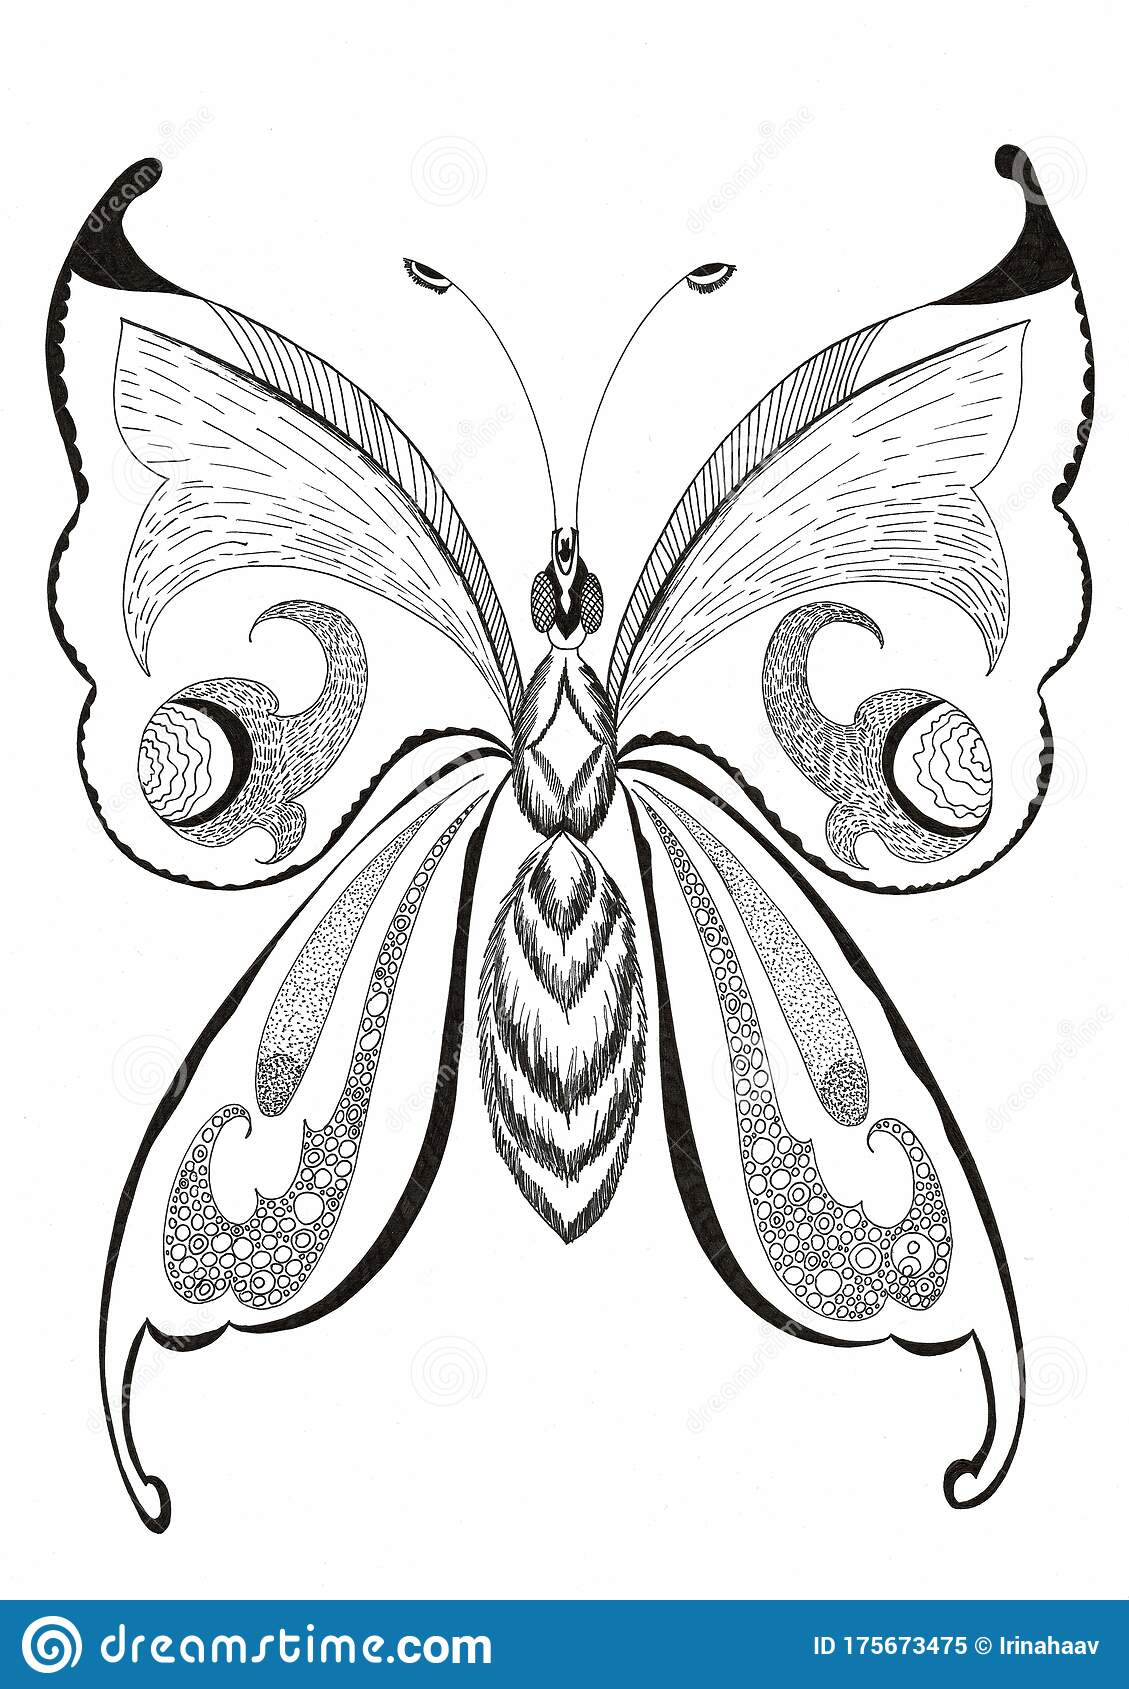 Decorative Fantasy Butterfly Drawn With Black Ink Stock Illustration Illustration Of Tattoo Clear 175673475